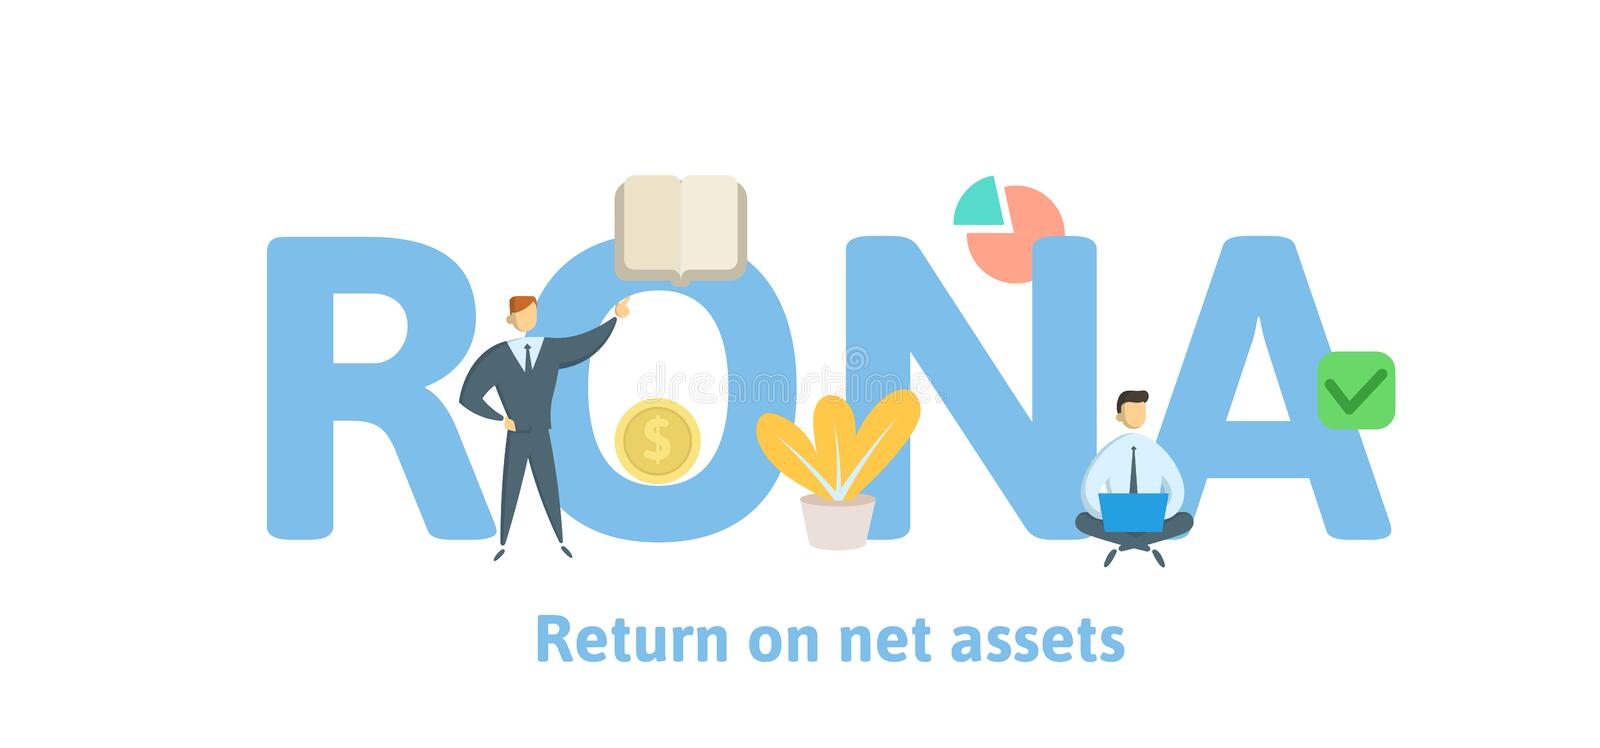 RONA, Return On Net Assets. Concept with keywords, letters and icons. Flat vector illustration. Isolated on white royalty free illustration